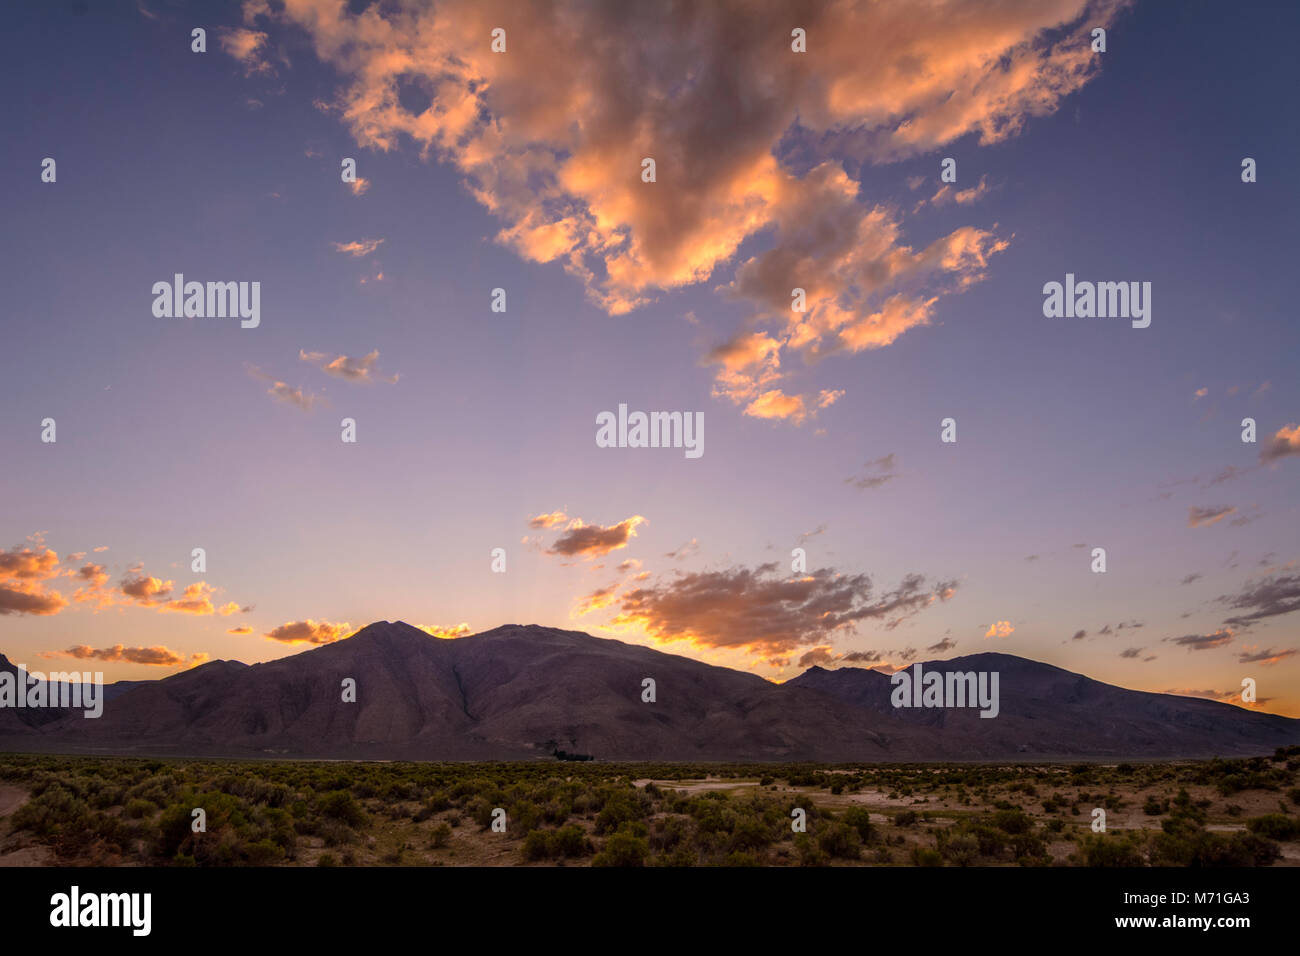 Pueblo Mountain at sunset, from Pueblo Valley in the Alvord Desert, southeast Oregon. - Stock Image